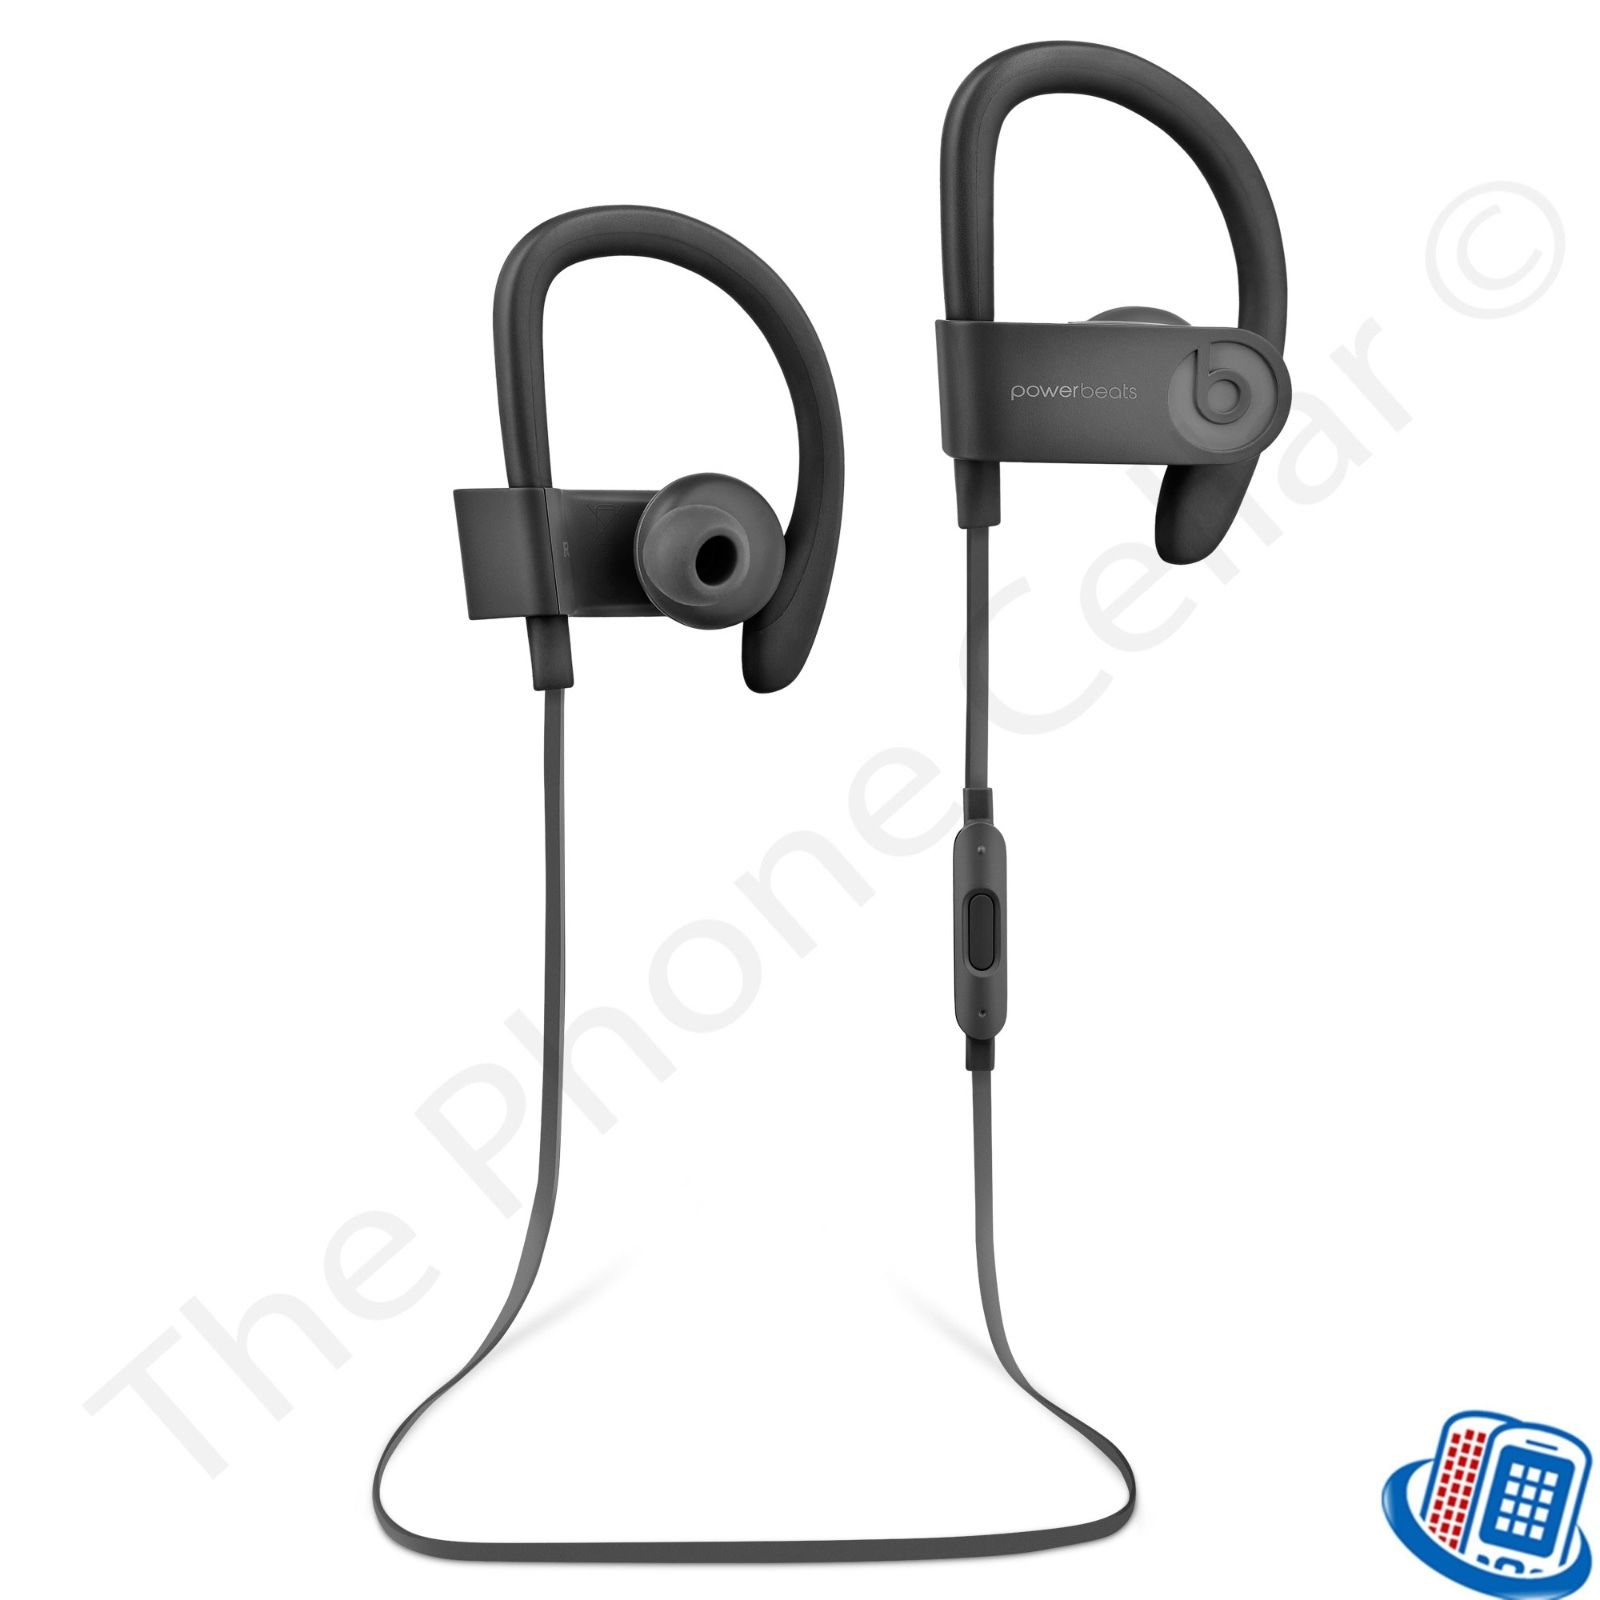 Refurbished Beats by Dr. Dre Powerbeats 3 Wireless Active Black Bluetooth Ear-Hook Headphones